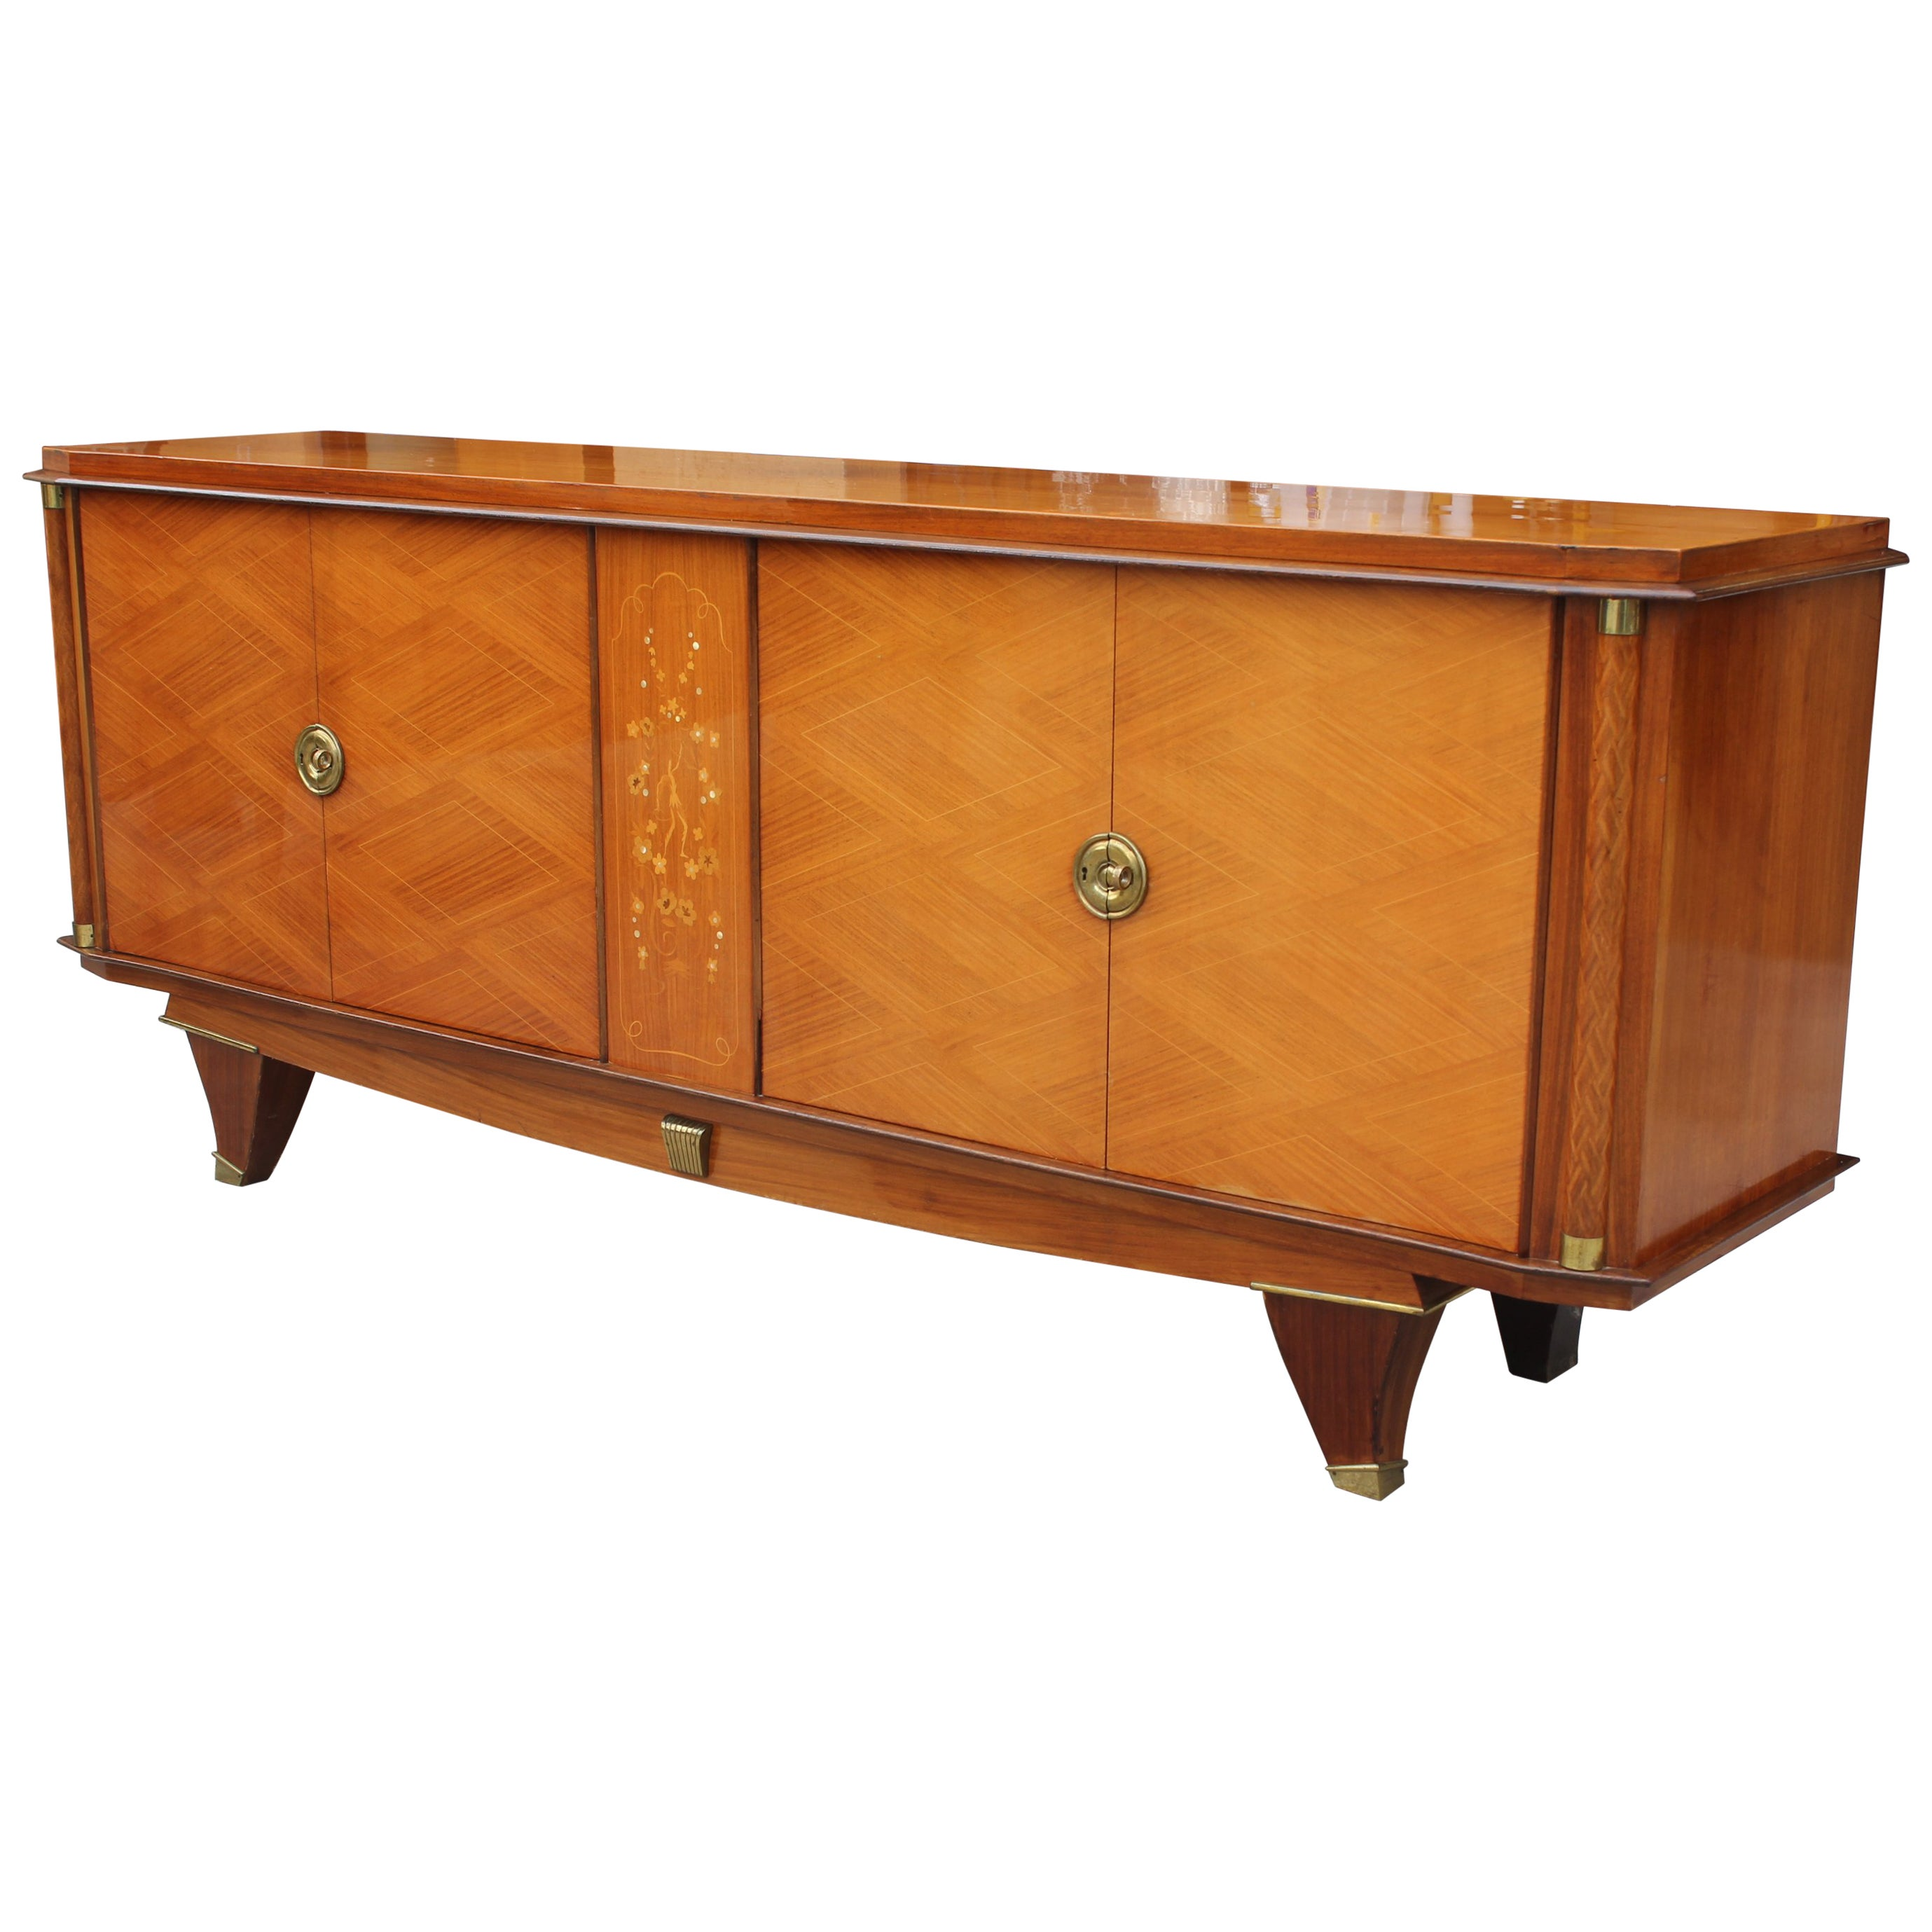 Fine French Art Deco Palisander Sideboard Or Buffet, M O P, Jules